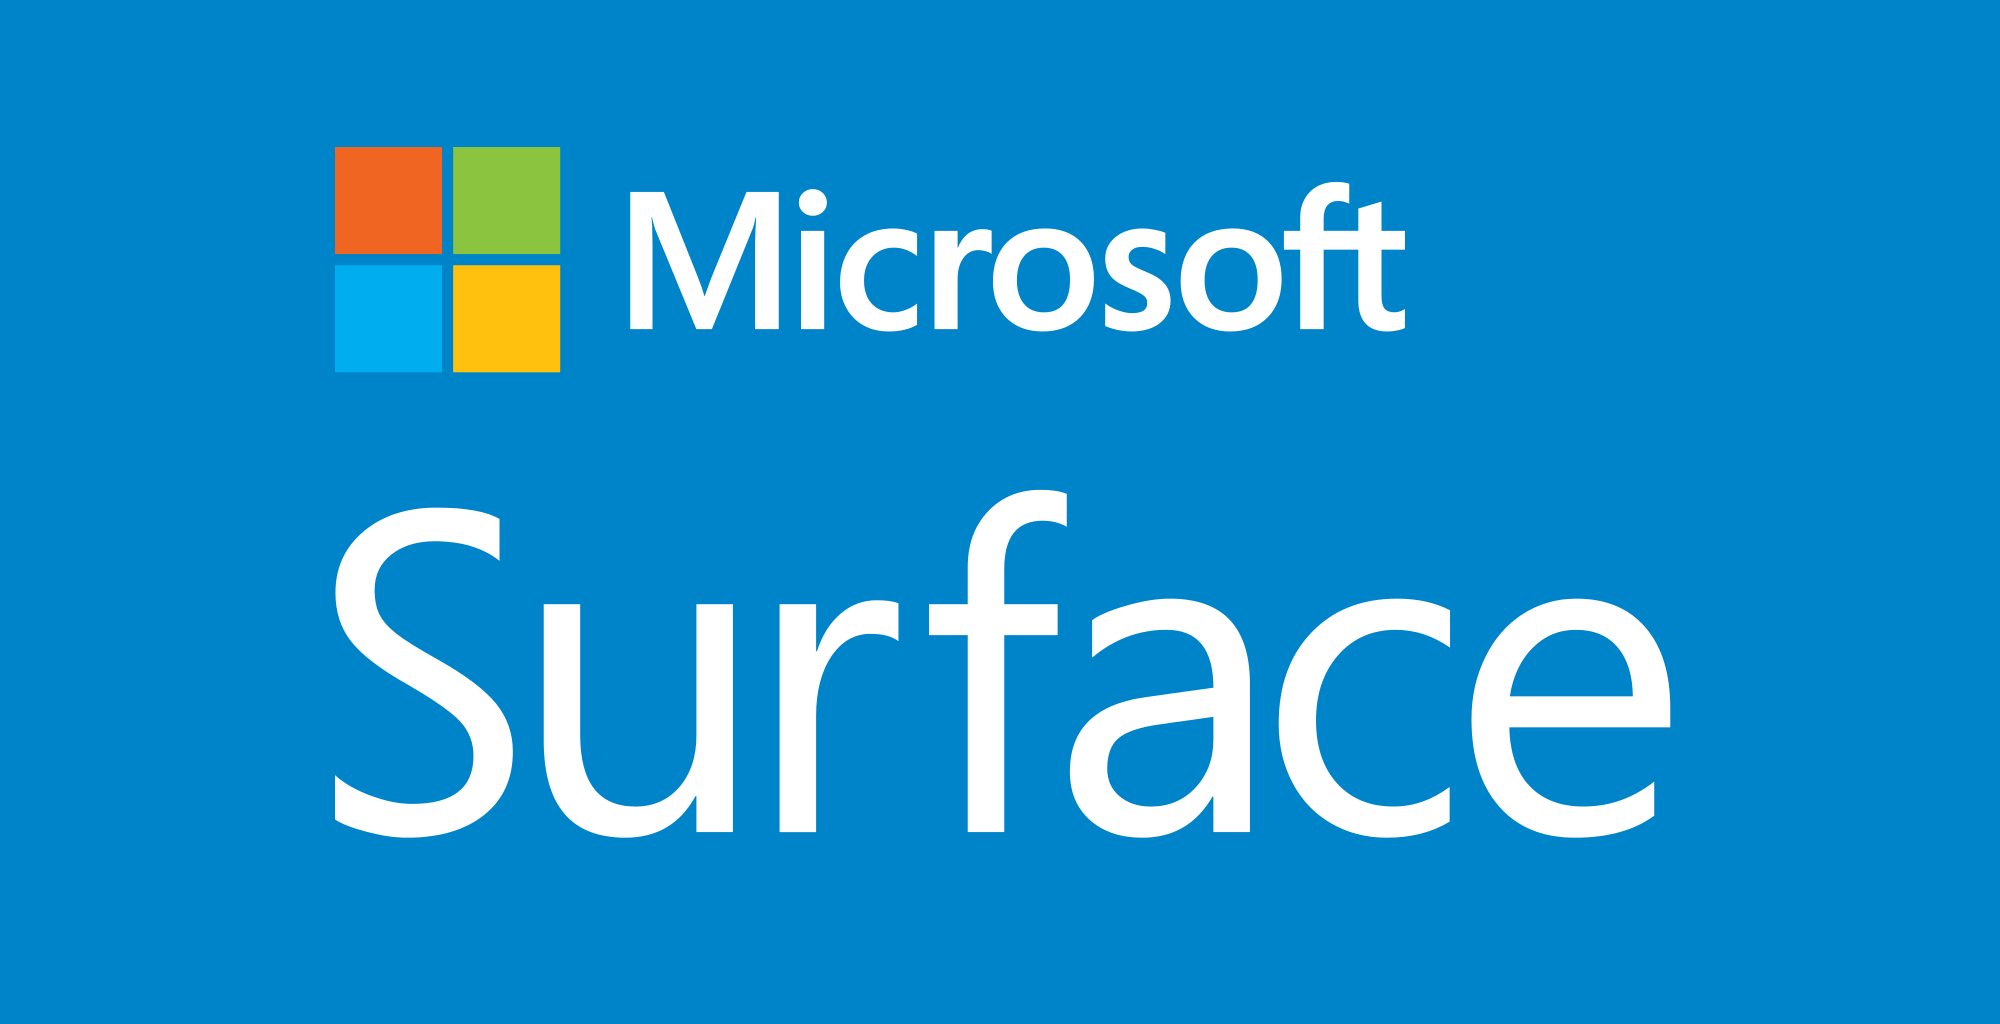 microsoft-surface-logo-271015